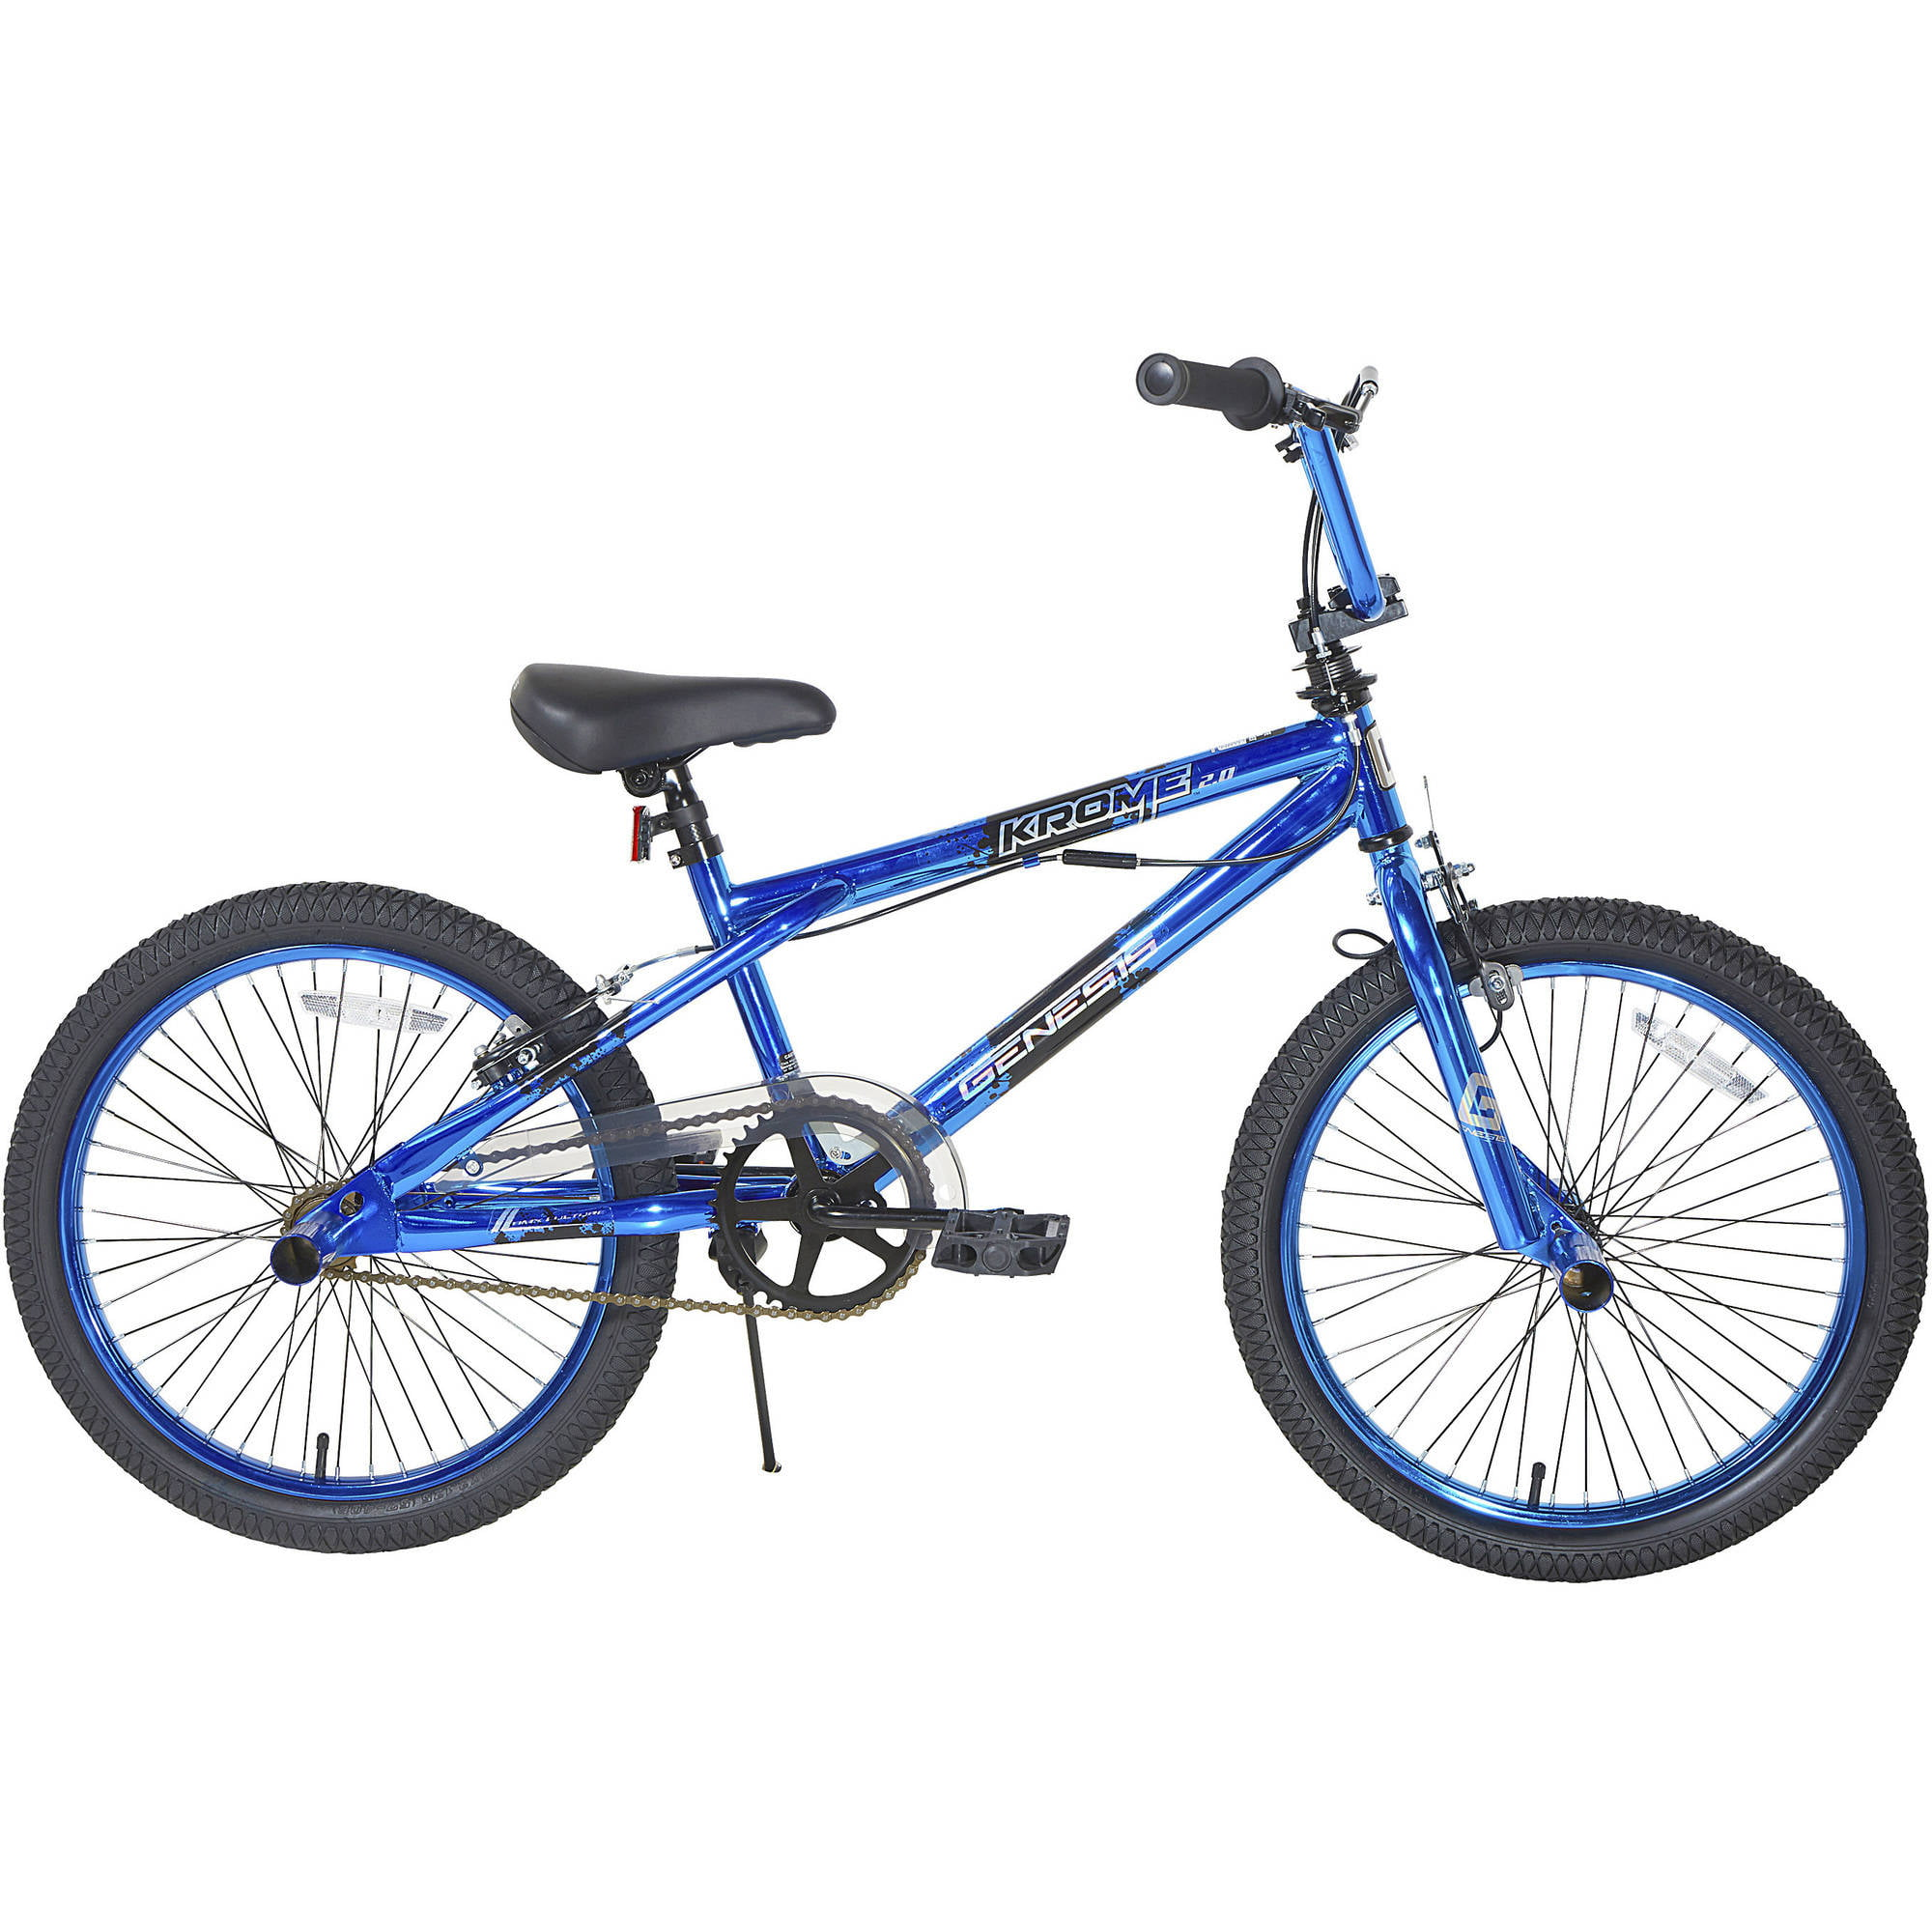 "20"" Genesis Boys' Krome 2.0 Bike, Blue by Dynacraft BSC"